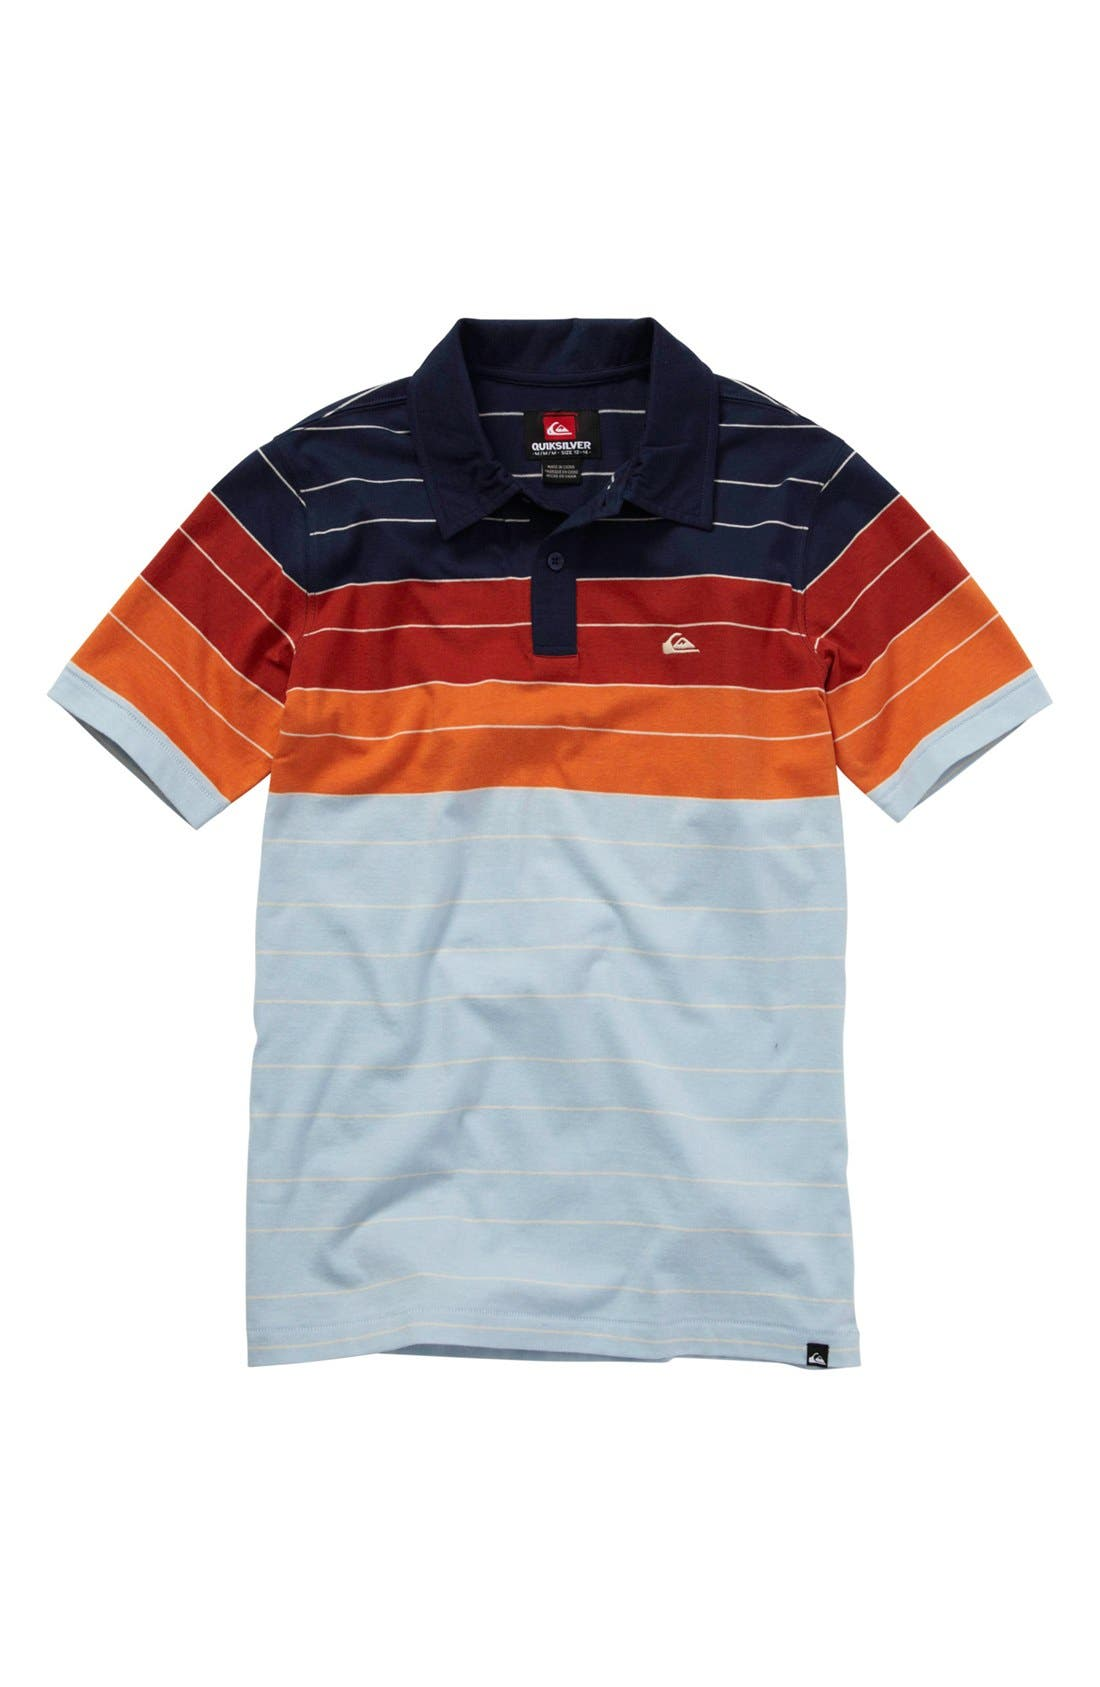 Alternate Image 1 Selected - Quiksilver 'North Side' Polo (Big Boys)